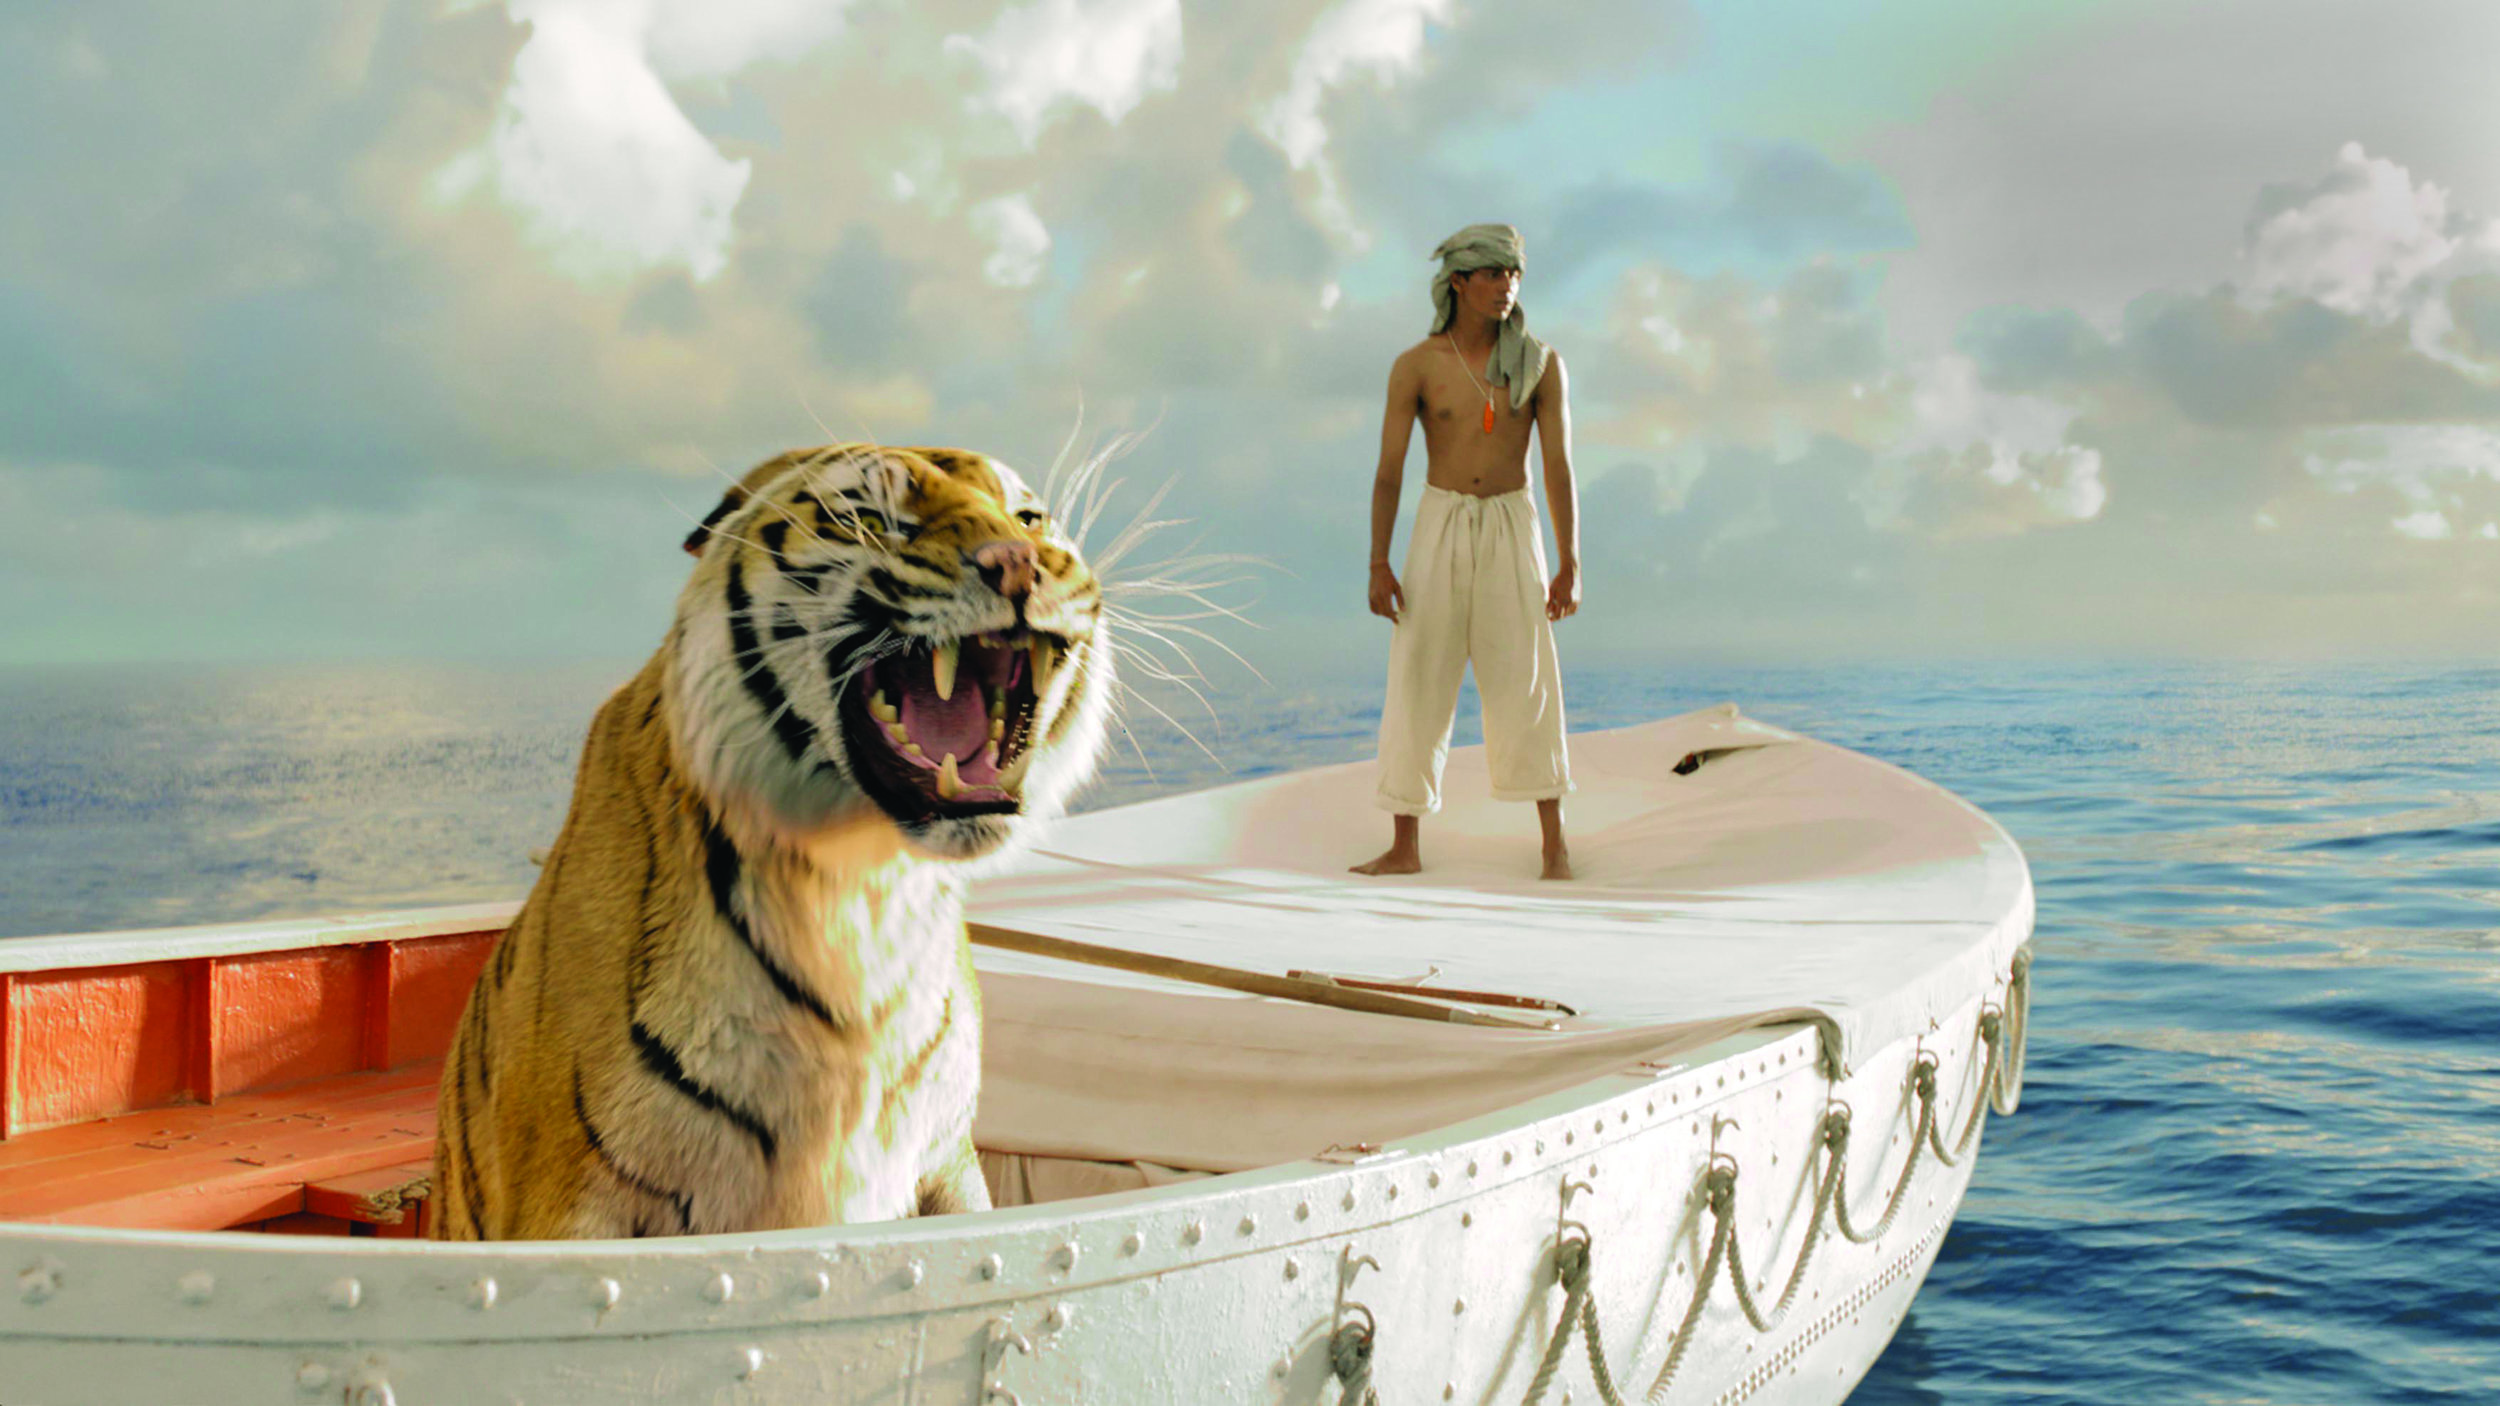 As shot from Life of Pi – One of the films that Sean worked on